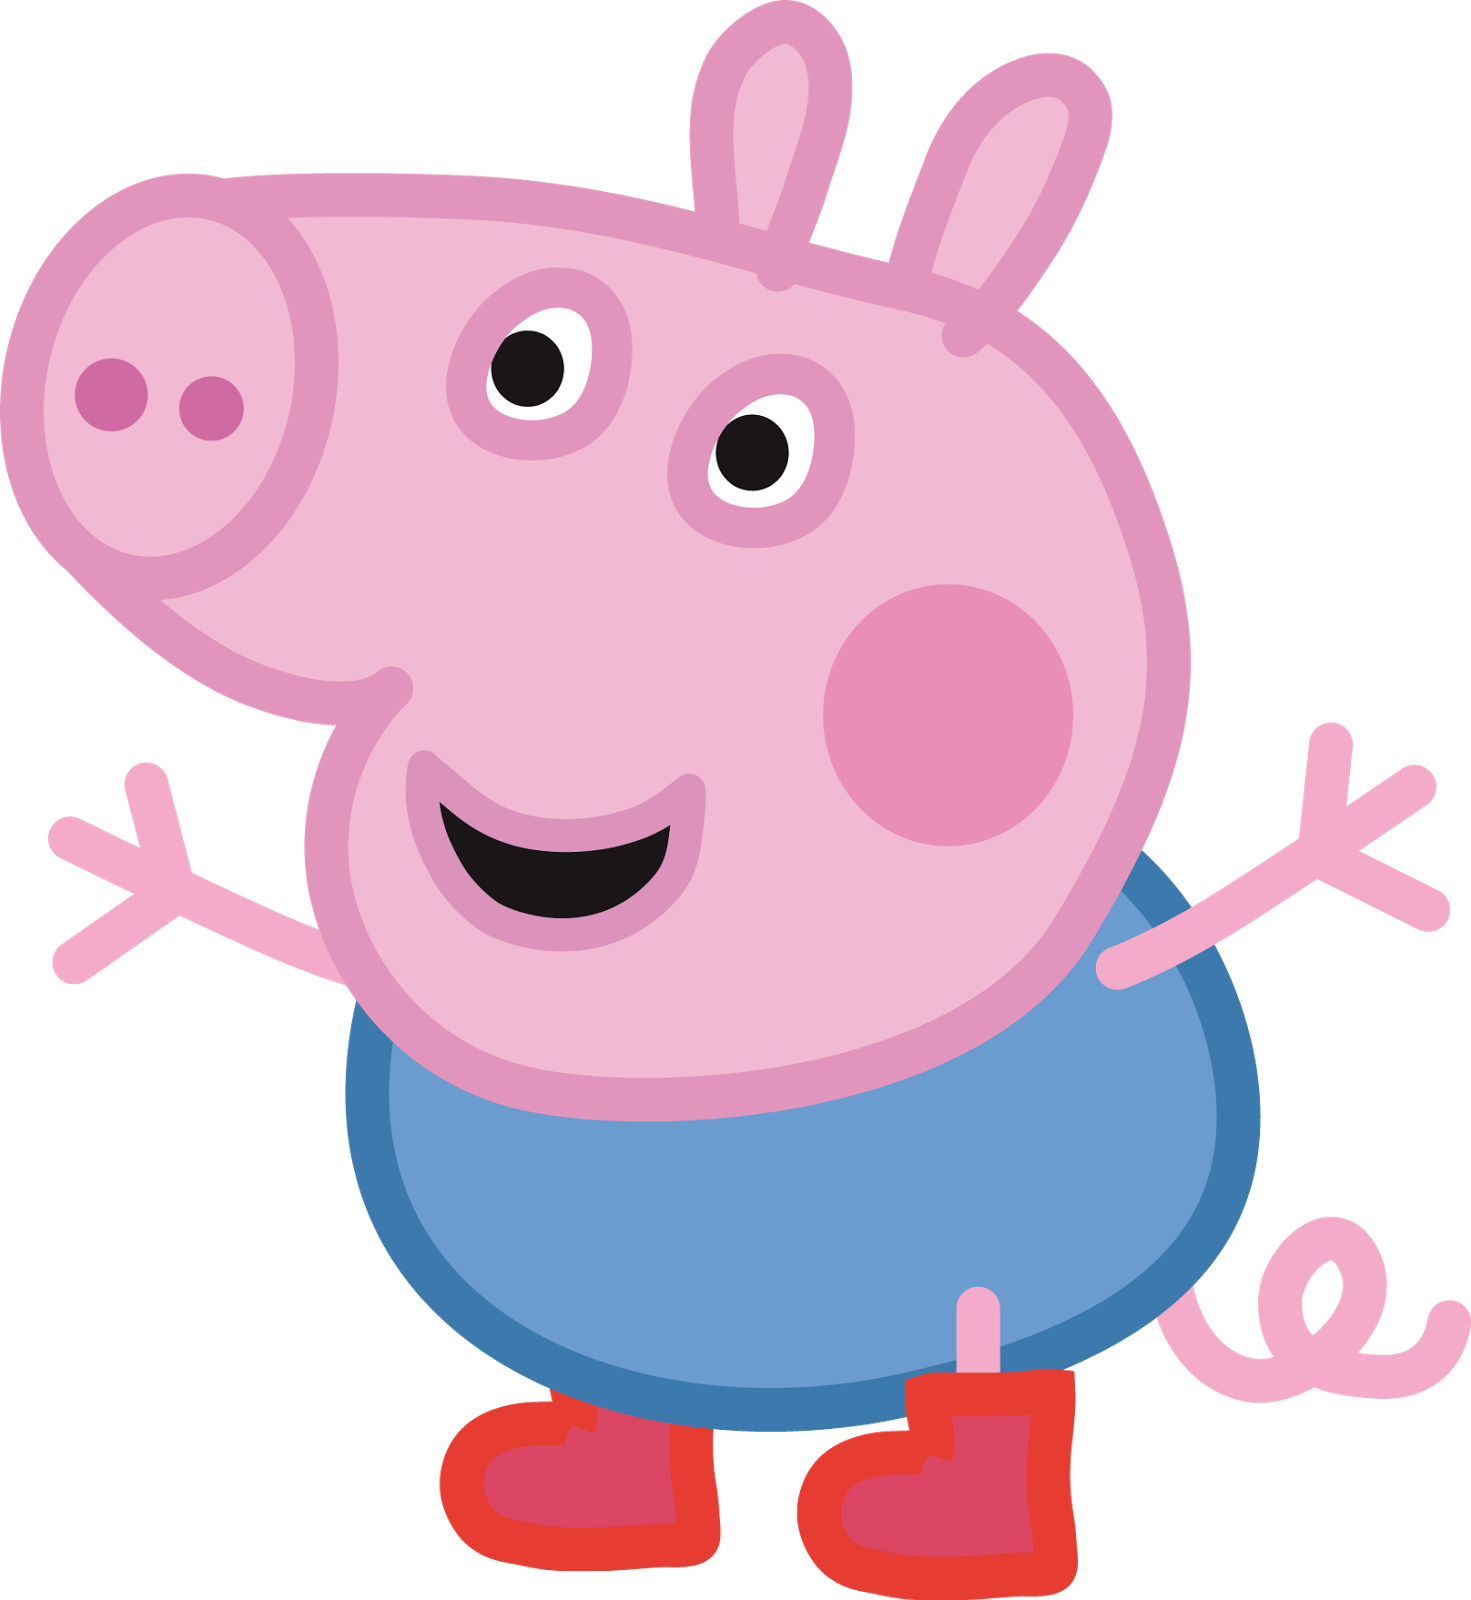 peppa pig princess imagenes hd - Buscar con Google | vinilos | Pinterest | George pig, Pig party ...